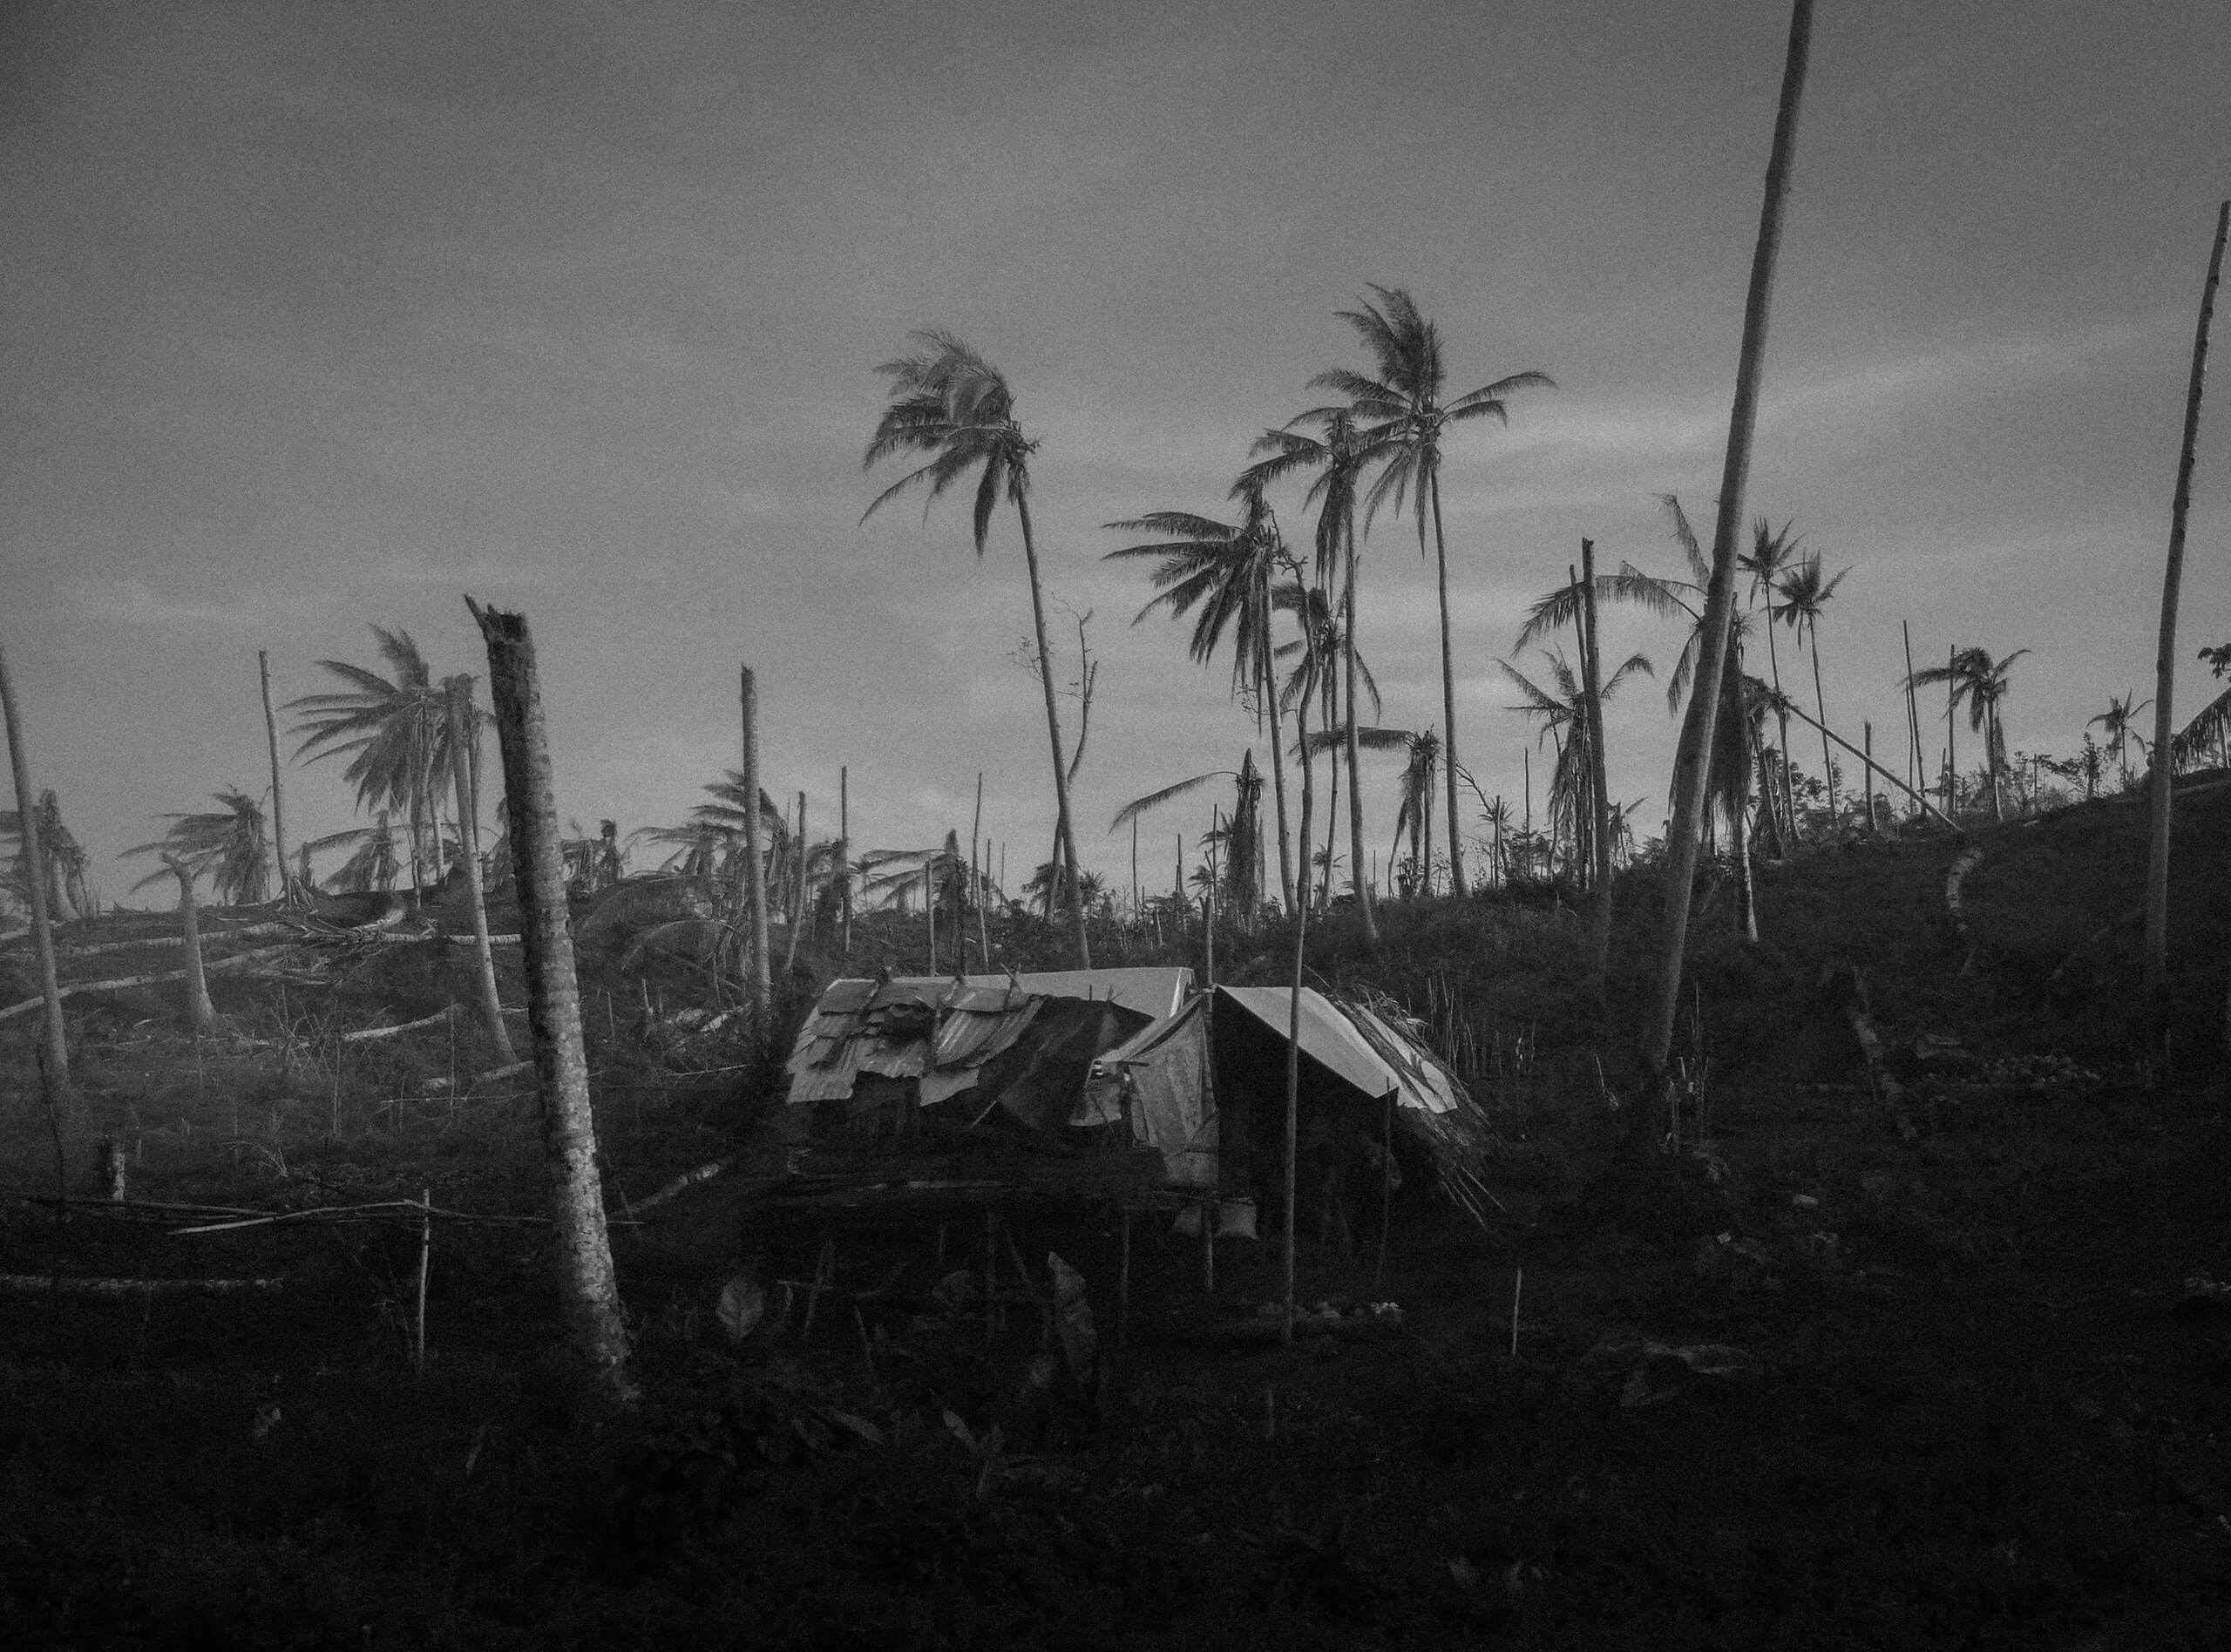 Aftermath of typhoon ruby in tacloban